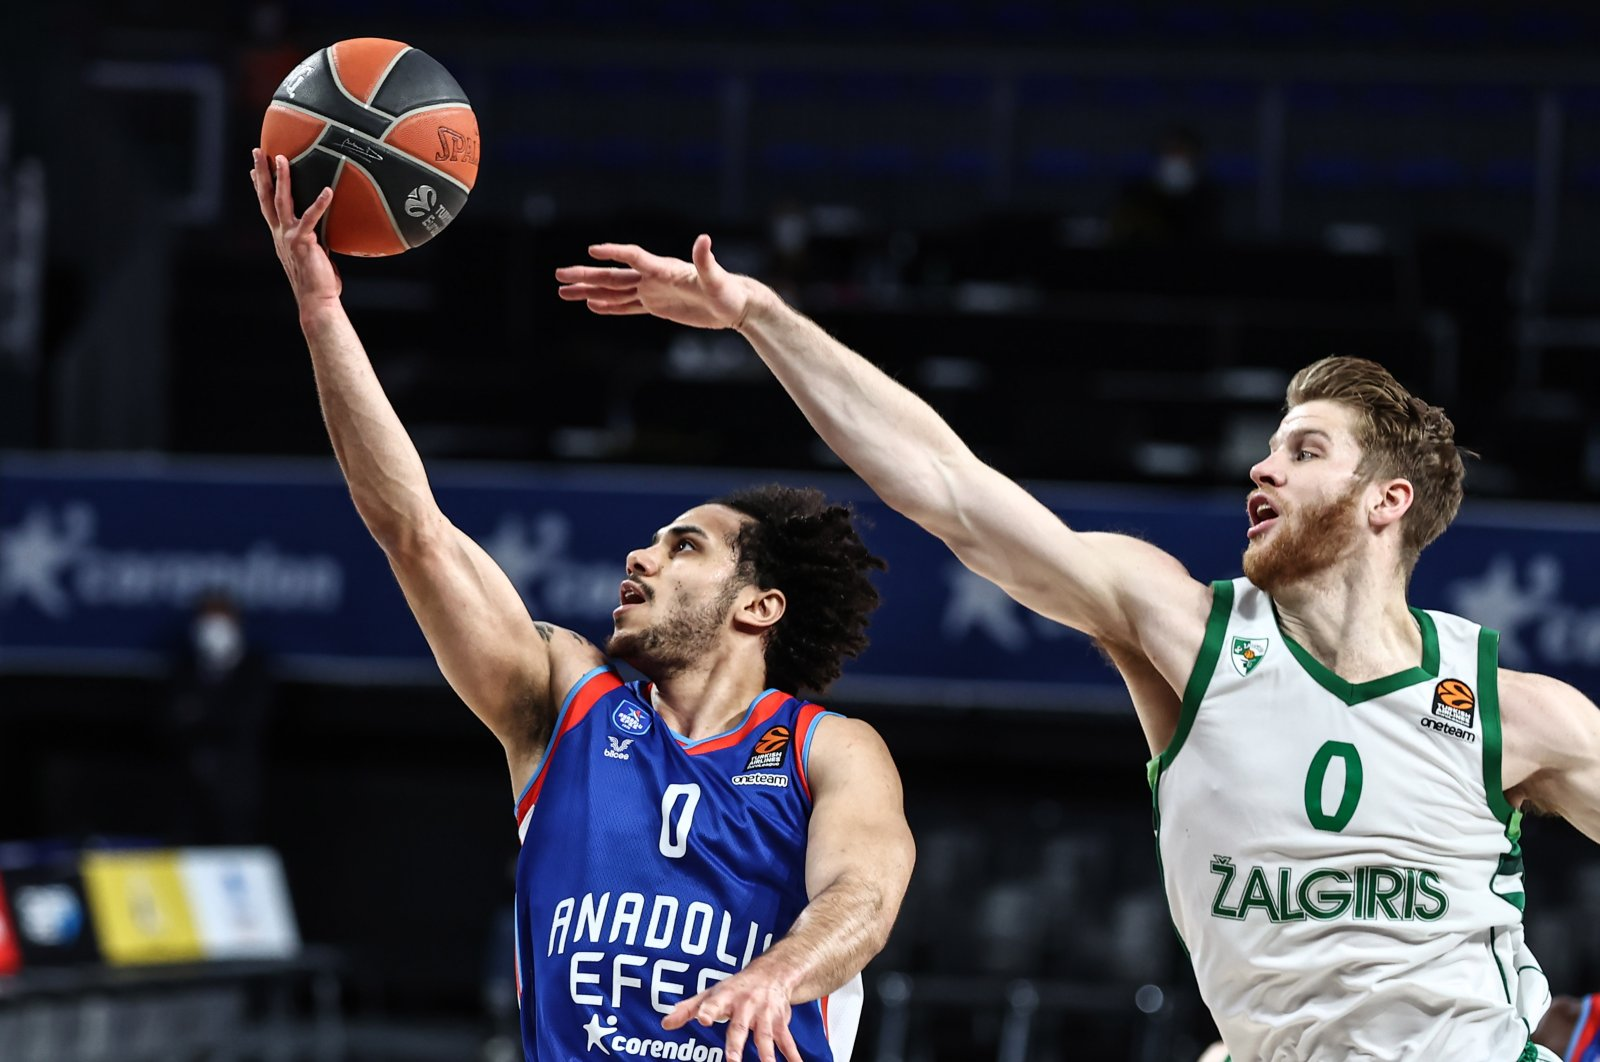 Anadolu Efes guard Shane Larkin (L) tries to score past Zalgiris guard Thomas Walkup in a THY EuroLeague match, Istanbul, Turkey, March 12, 2021. (AA Photo)